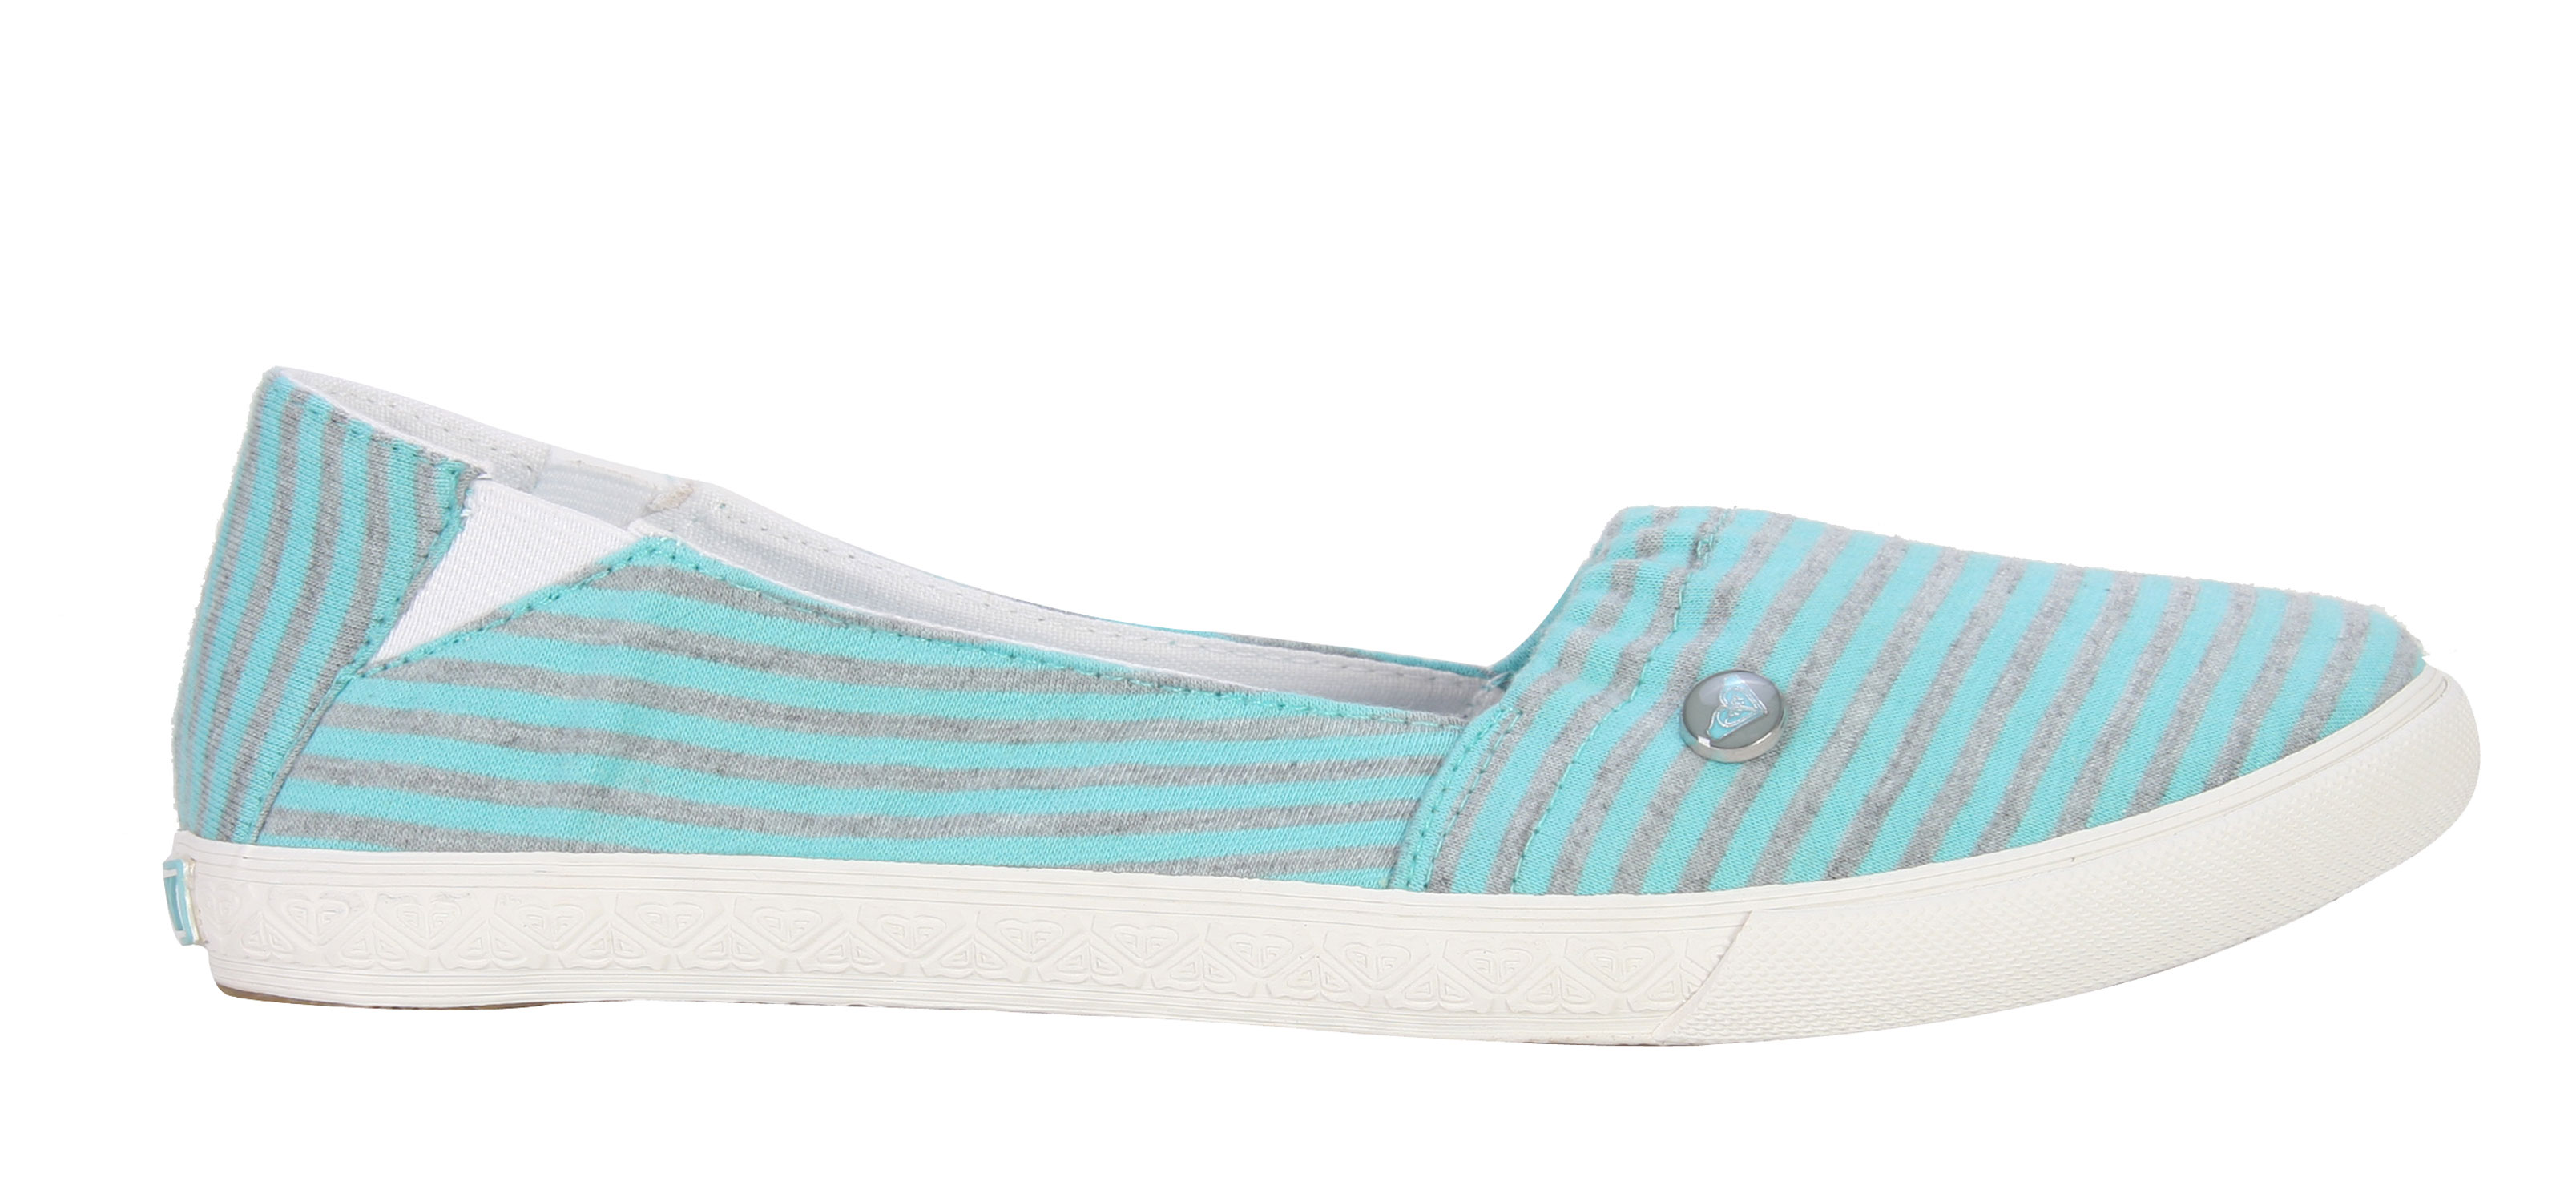 Surf Look truly feminine in these ultra comfy pair, the Roxy Abbey Shoes.  Featuring a light skinny stripe pattern, these shoes will instantly add texture to any look.  Its top line is elasticized for great fit and easy wear.  Great durable rubber soles provide great traction, ideal for long walks in the sun.  Look fabulous while feeling super comfortable and rock these in true style.Key Features of The Roxy Abbey Women's Shoes:  Striped Jersey  Elastic at Top Line For Fit  Enamel Logo Pin  Canvas Lining and Insole  Rubbing Foxing and Outsole  Boxed - $27.95